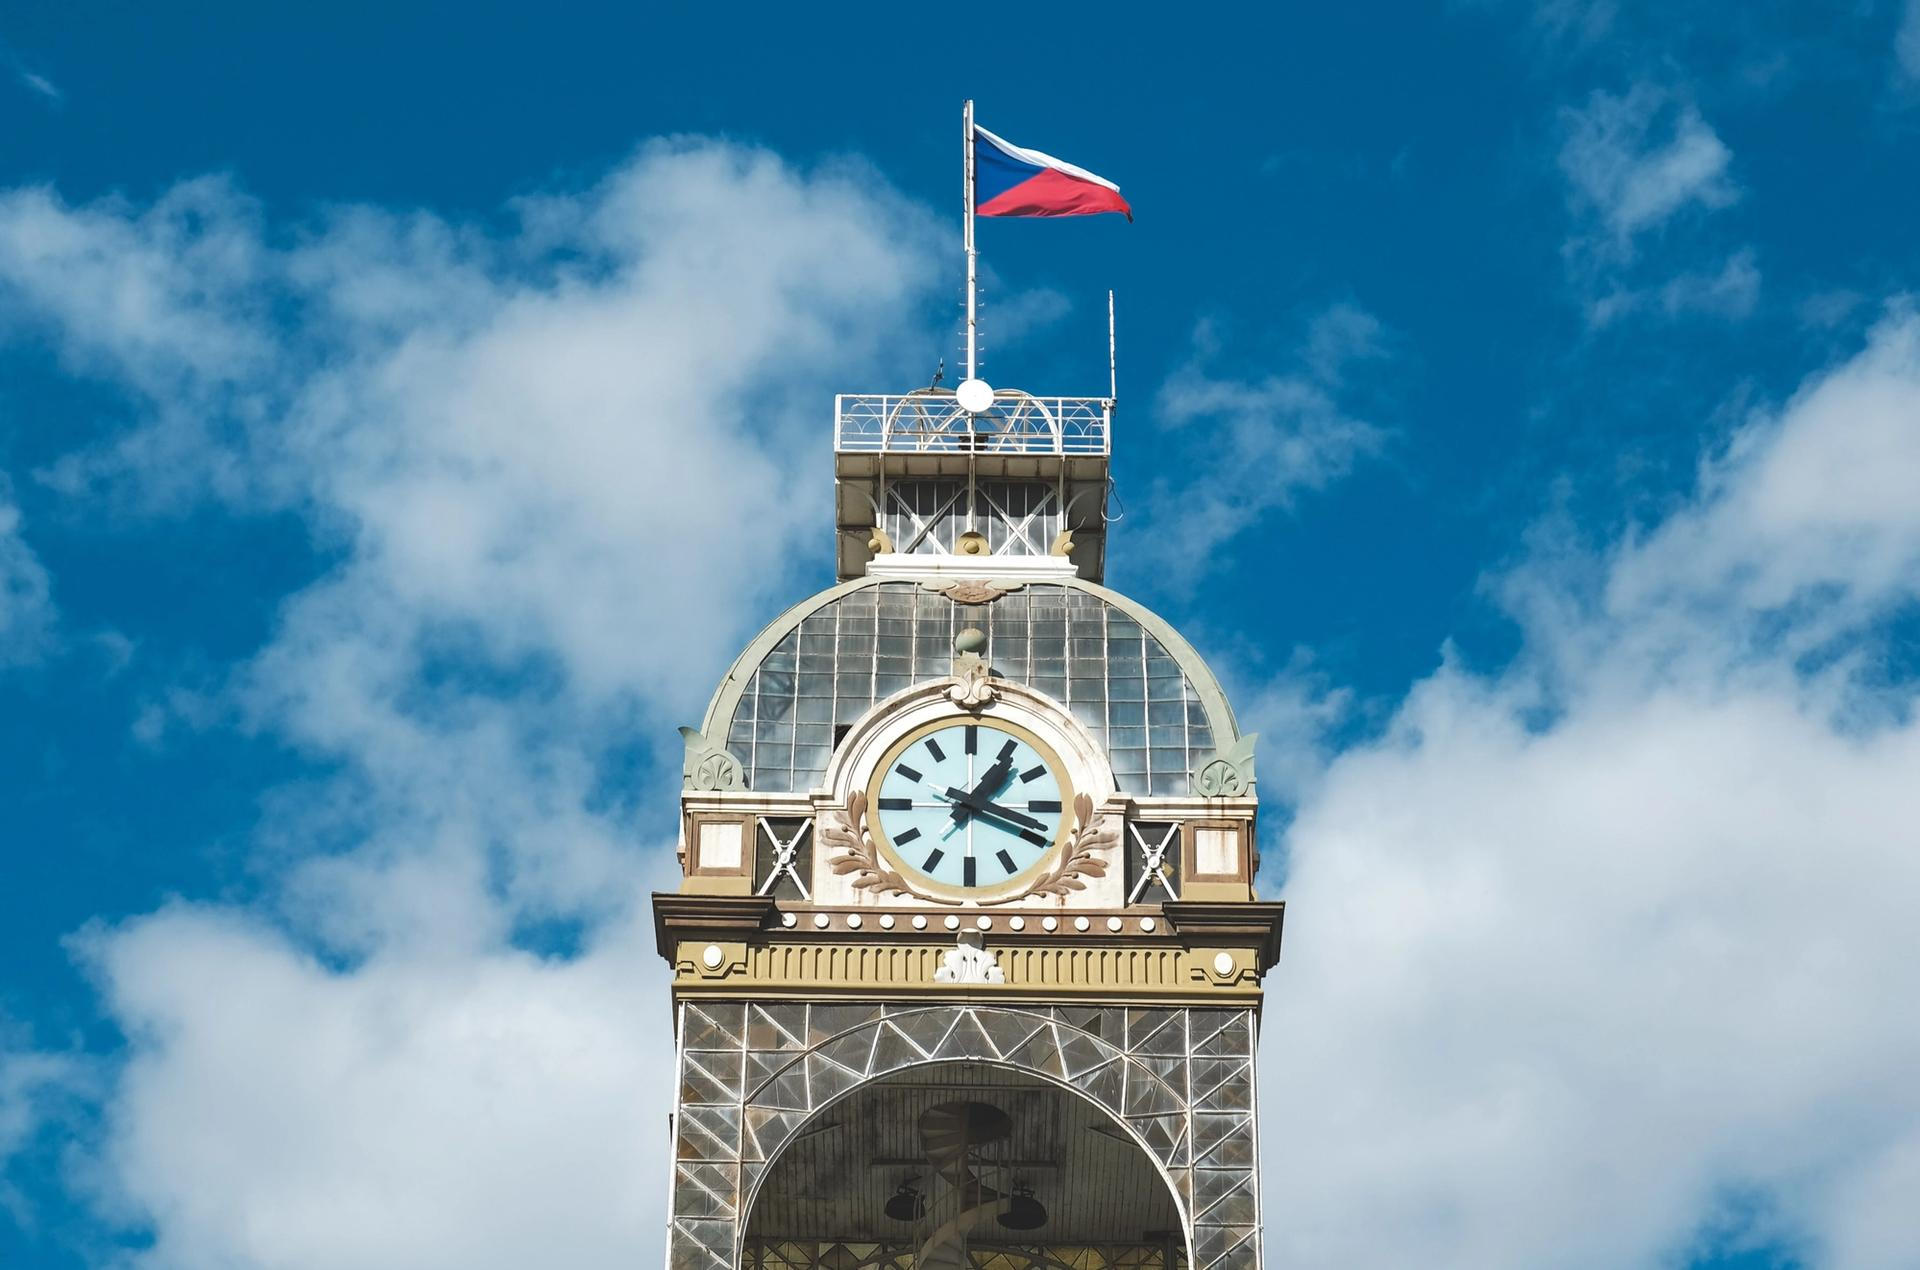 The tower of the Prague Exhibition Center with the Czech flag Photo: Jan Baborák on Unsplash